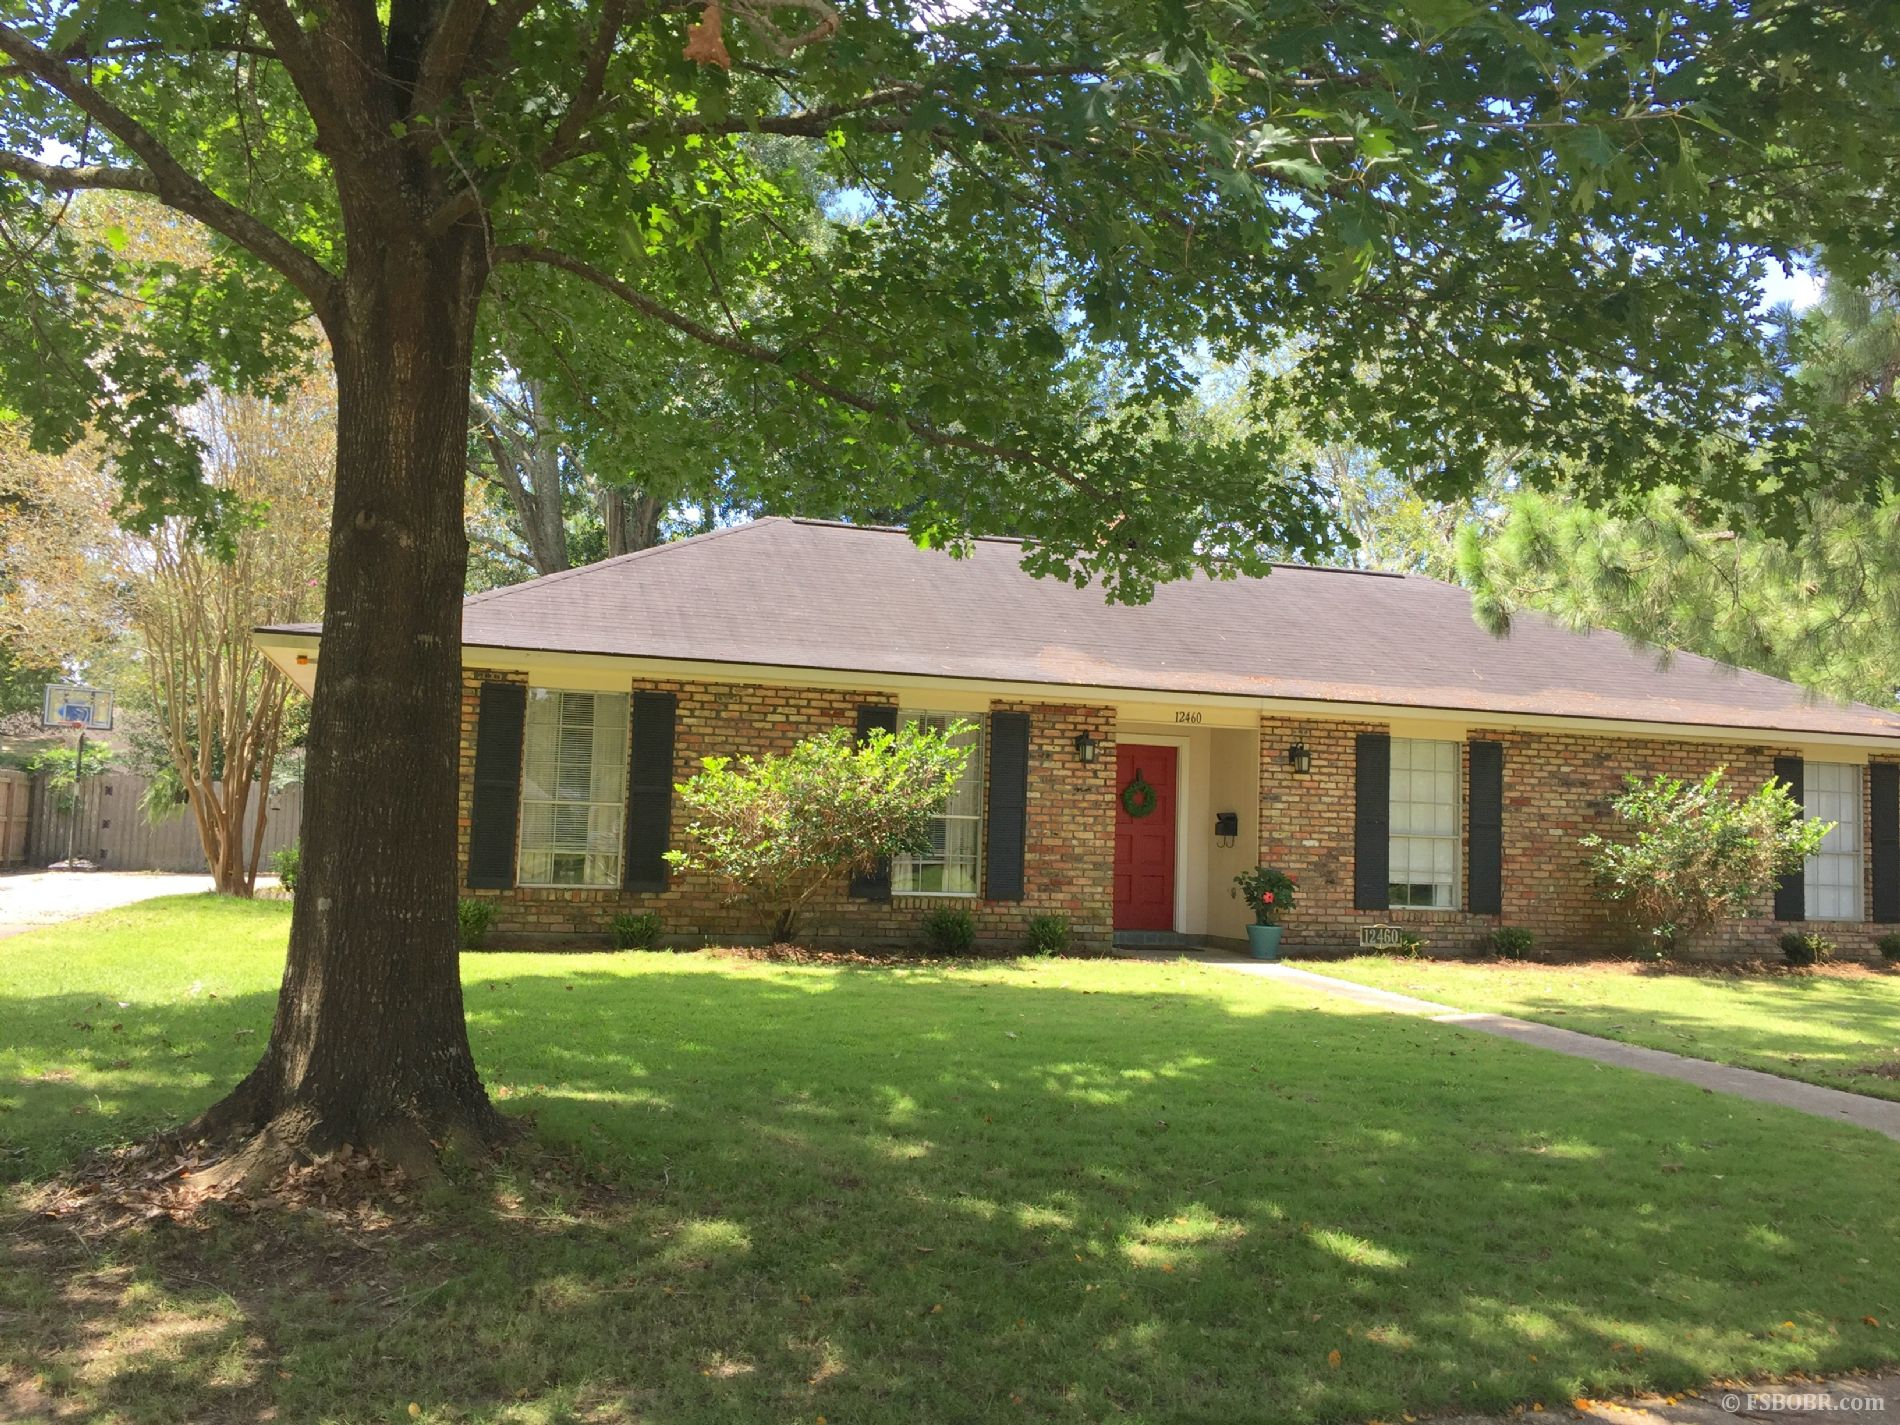 Baton Rouge Home  LA Real Estate Listing. For Sale By Owner Listings by FSBOBR com  Baton Rouge FSBO and